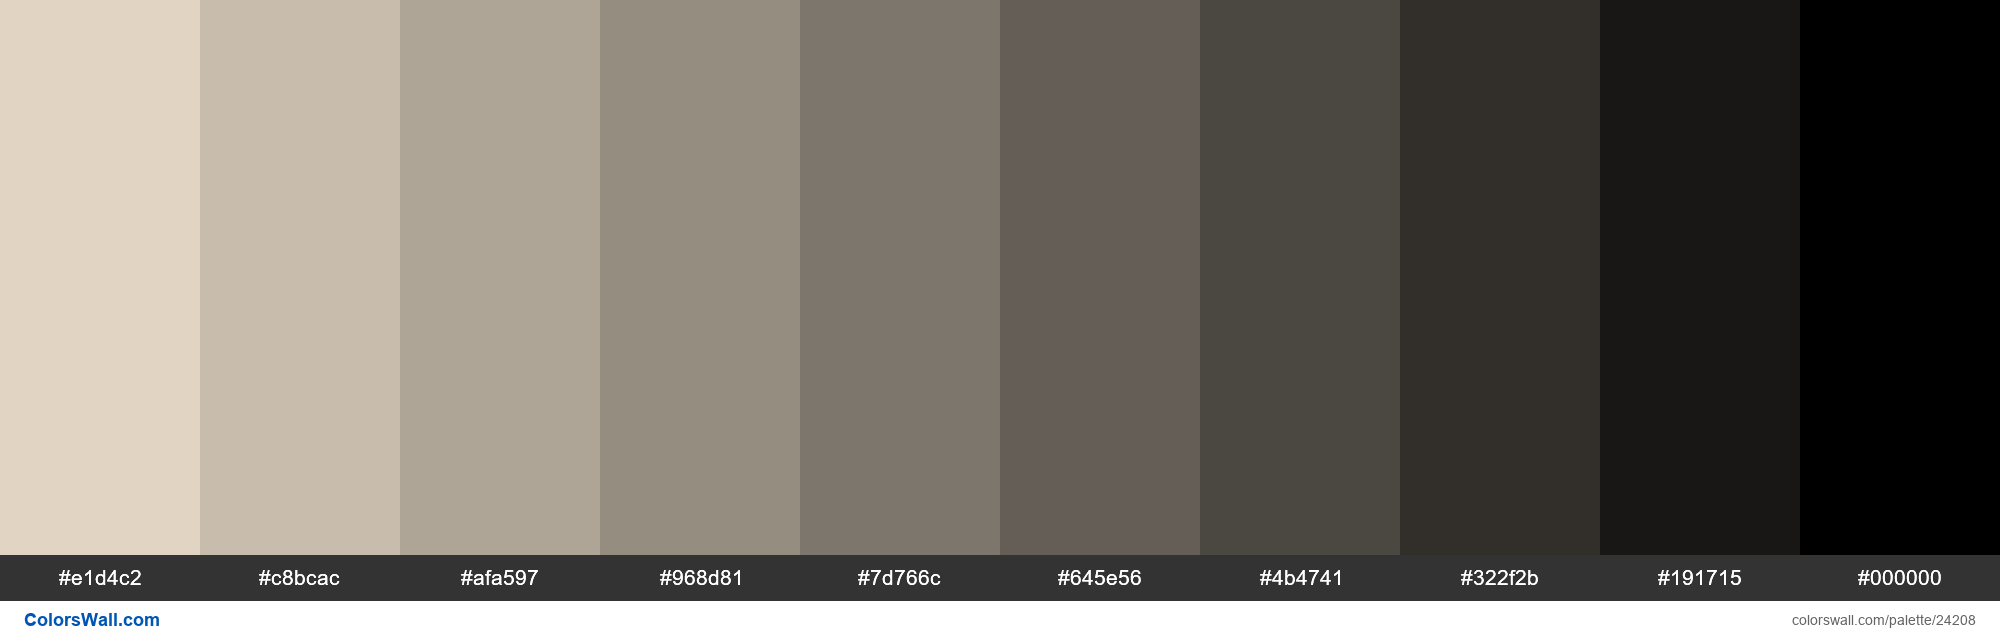 Shades of AntiqueWhite #FAEBD7 hex color - #24208